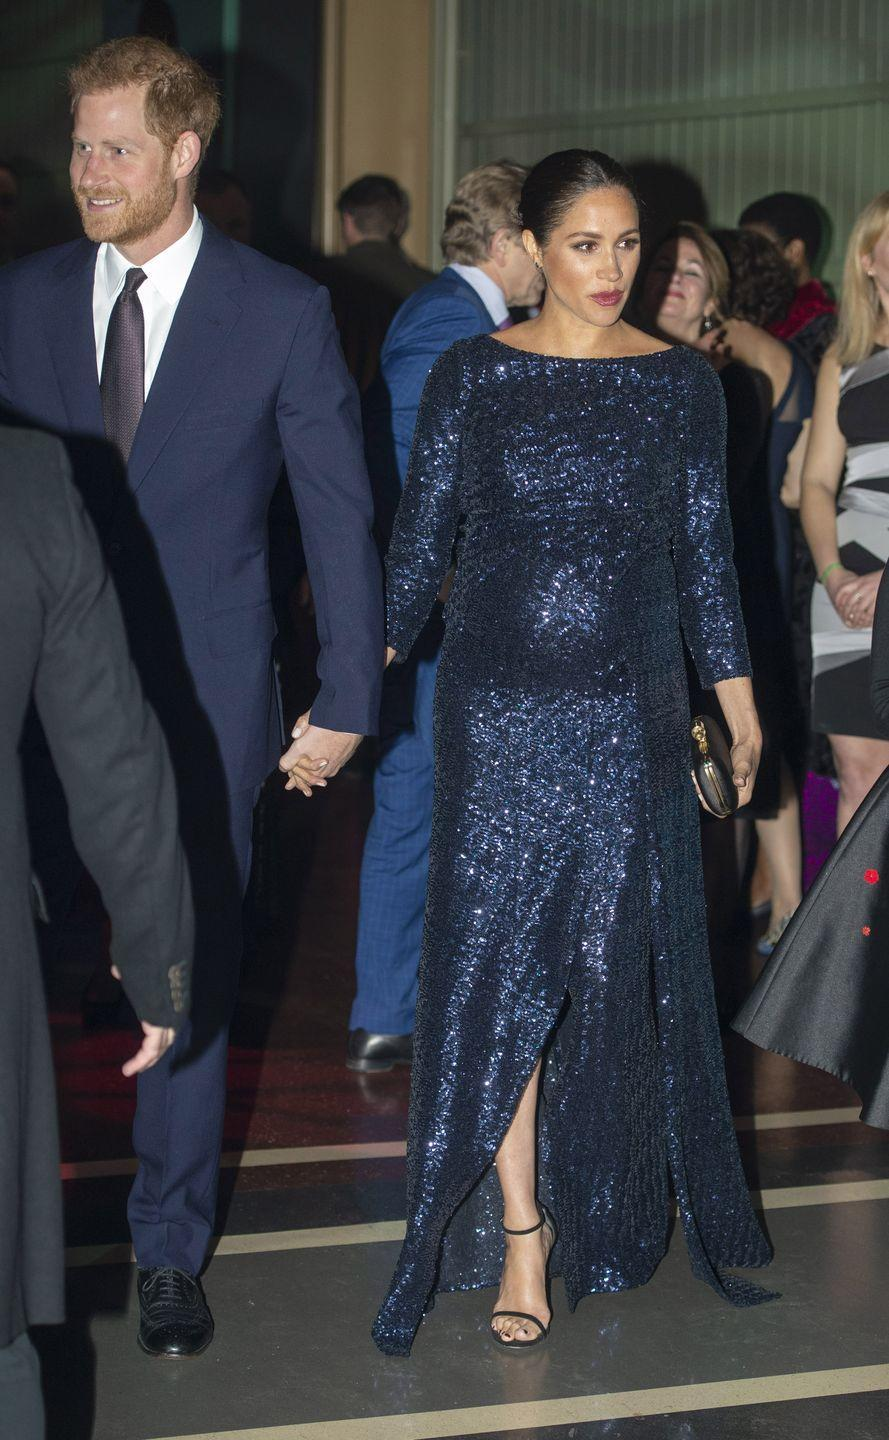 <p>But Kate's not the only royal brave enough to go for the glitter. Meghan wore this navy sequin dress to a Cirque du Soleil performance in 2019. </p>